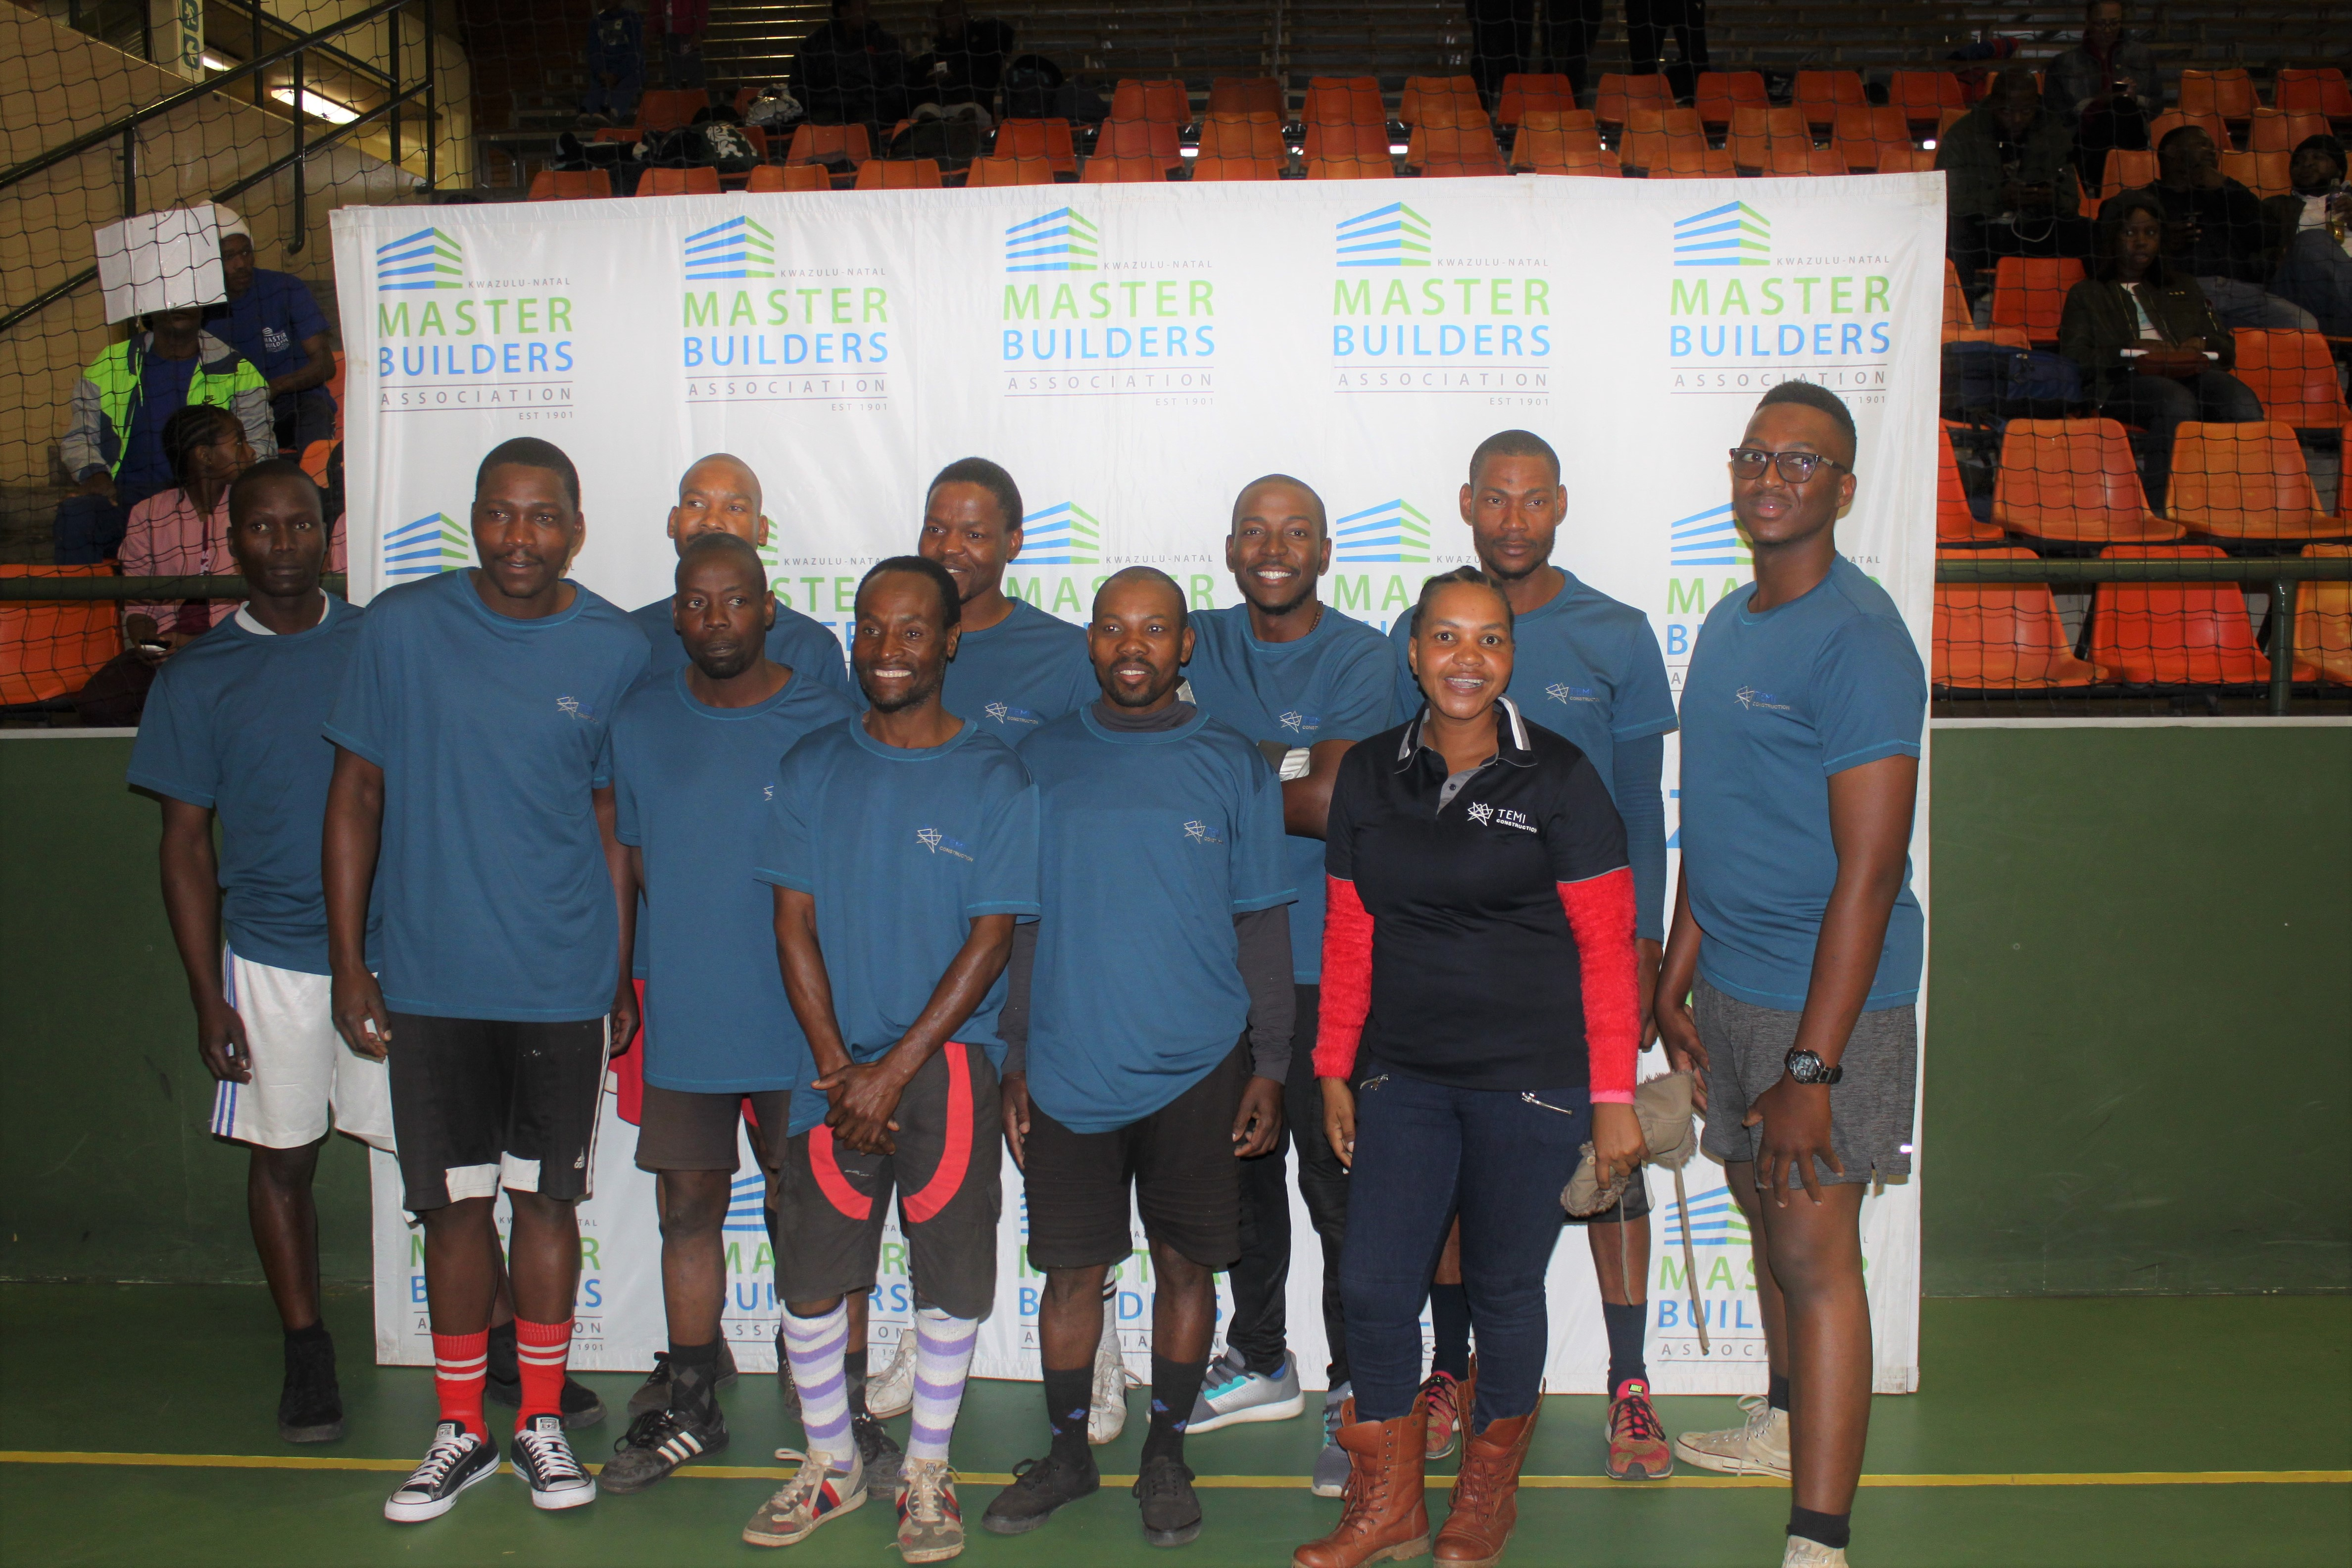 IMG 8689 002 Master Builders - #TeamTemi: Durban Master Builders Association Soccer Event 2018